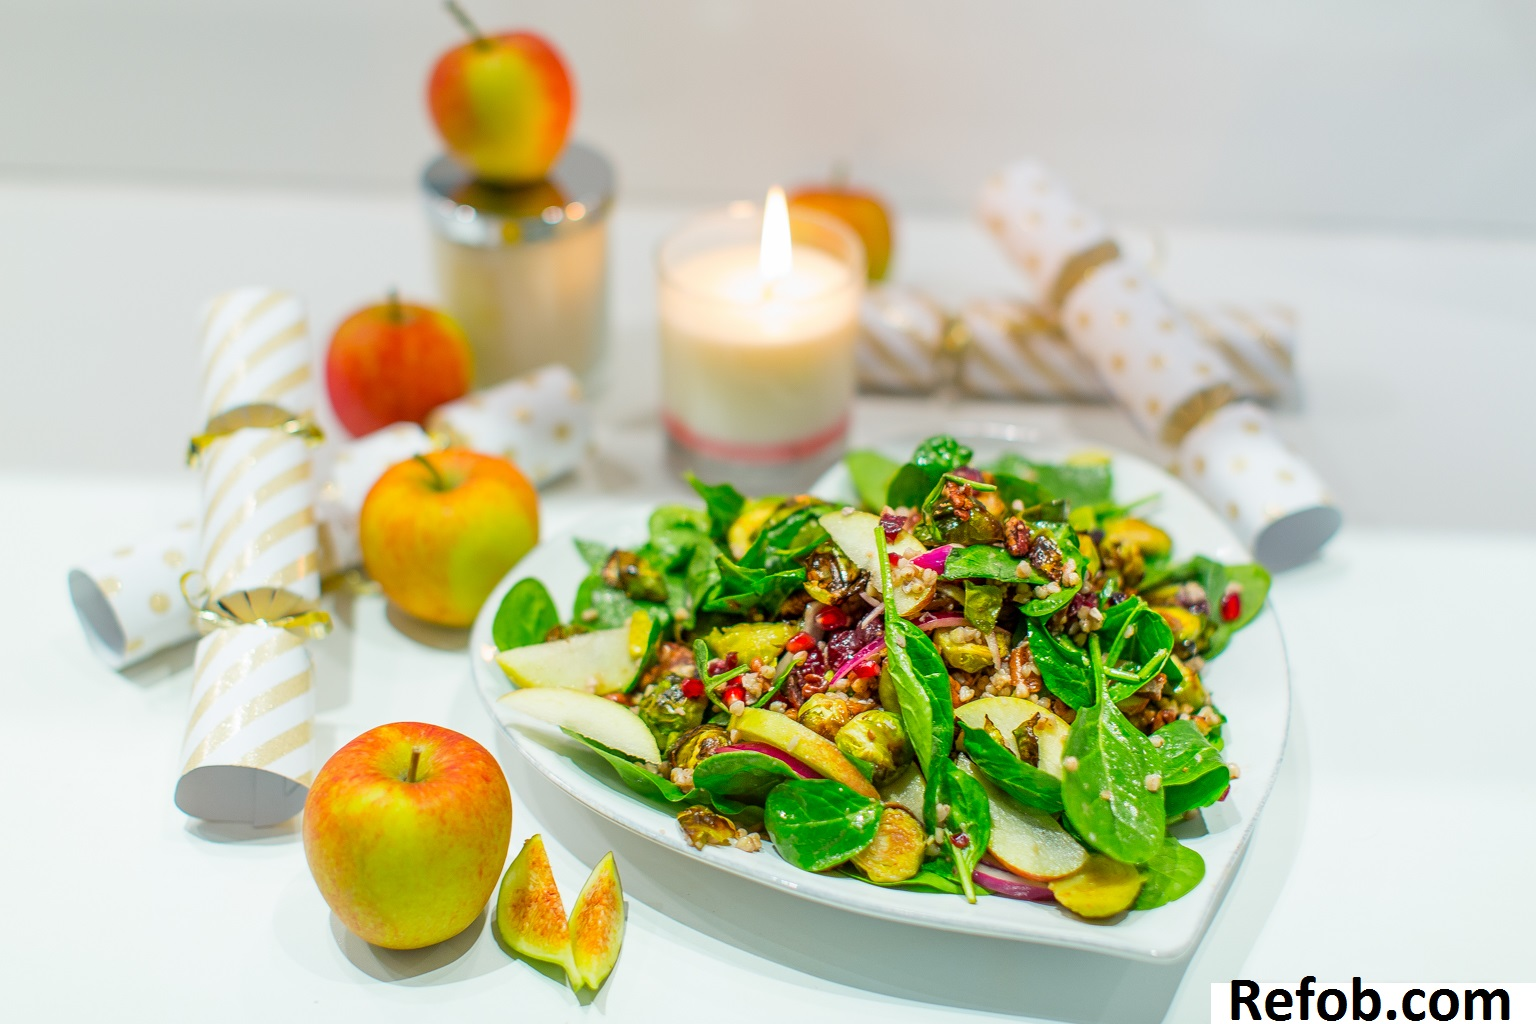 How to eat food, to get save from diseases?